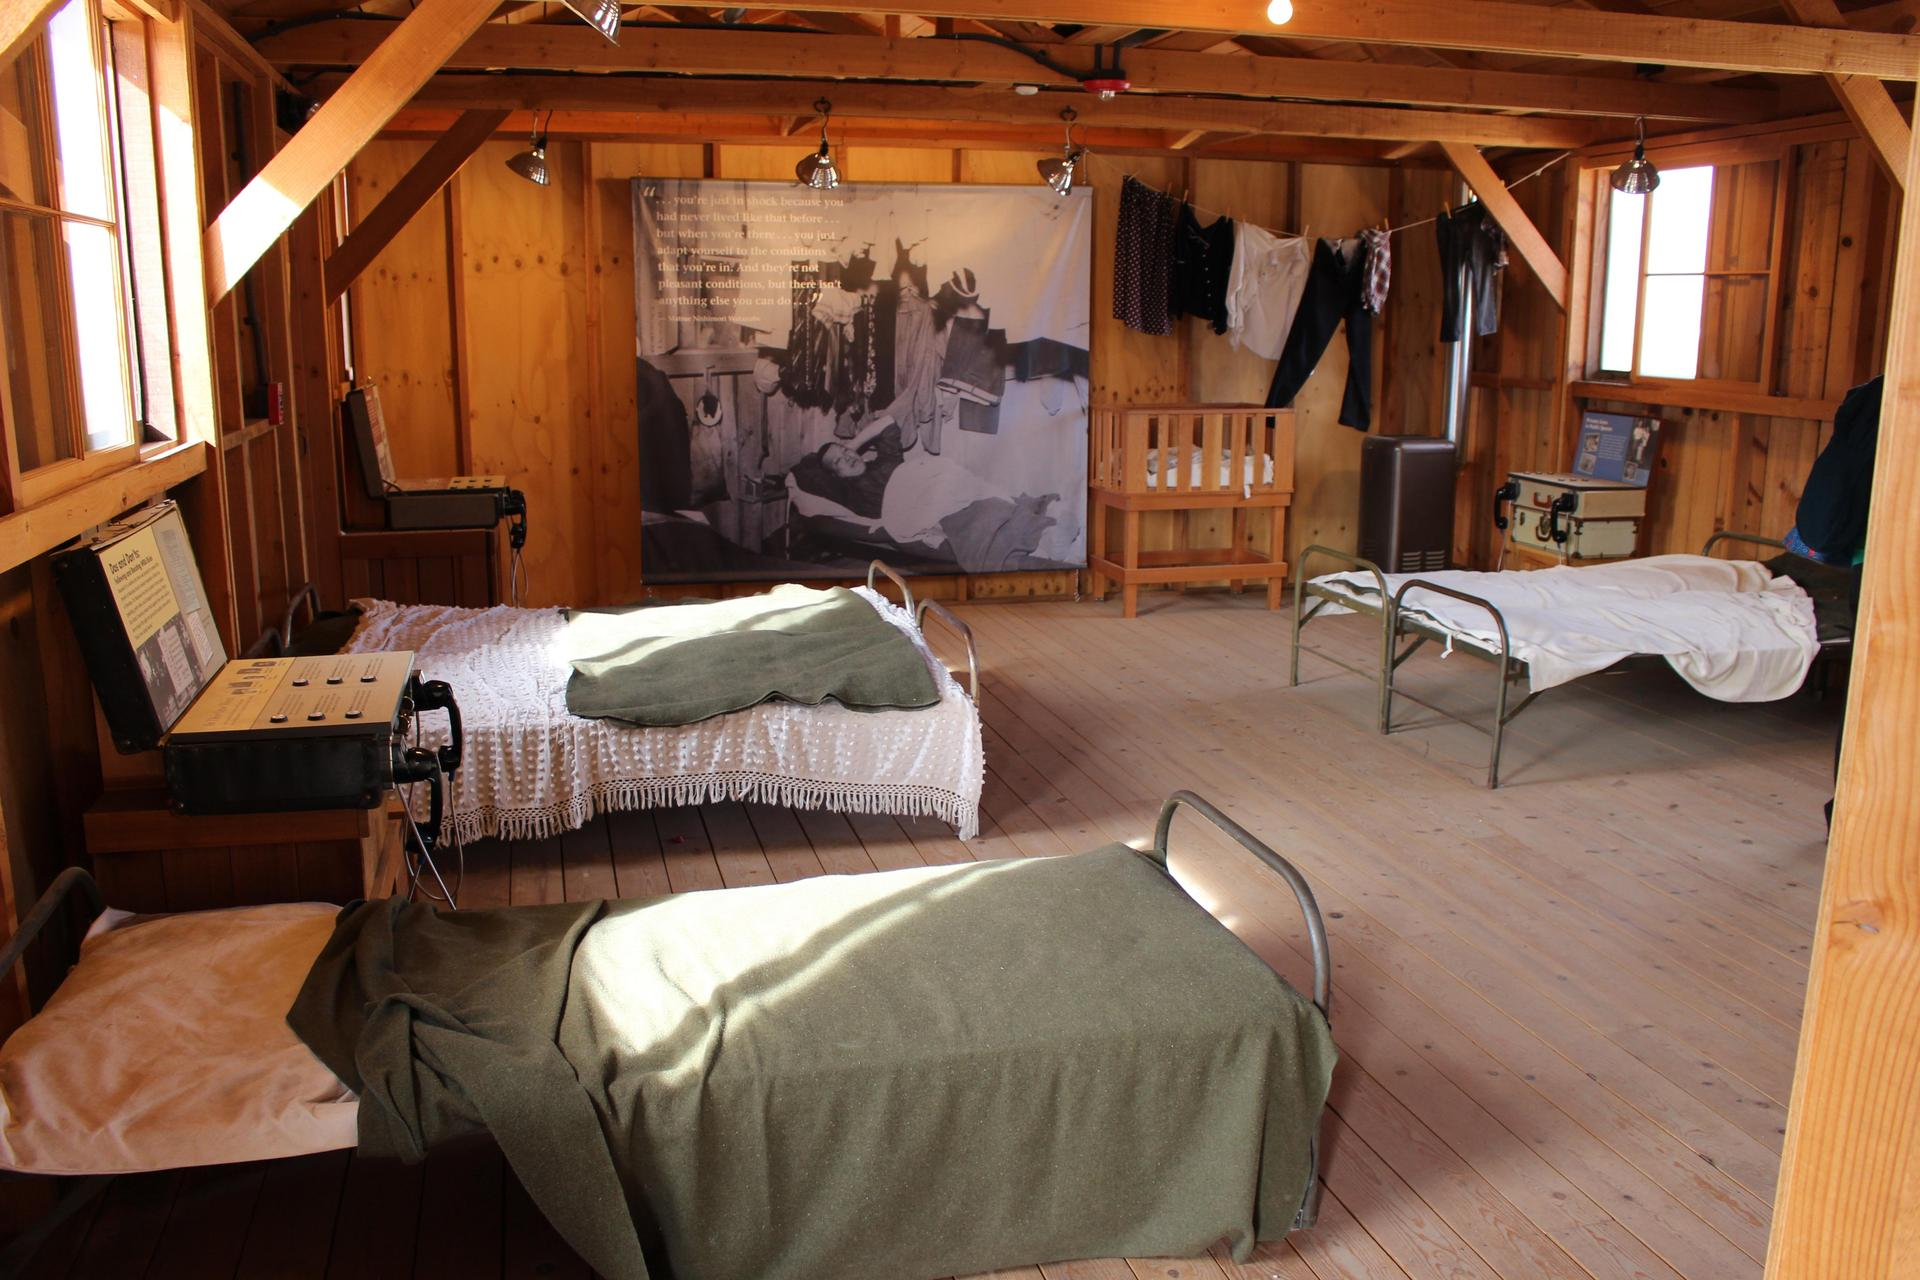 Visit the reconstructed barracks